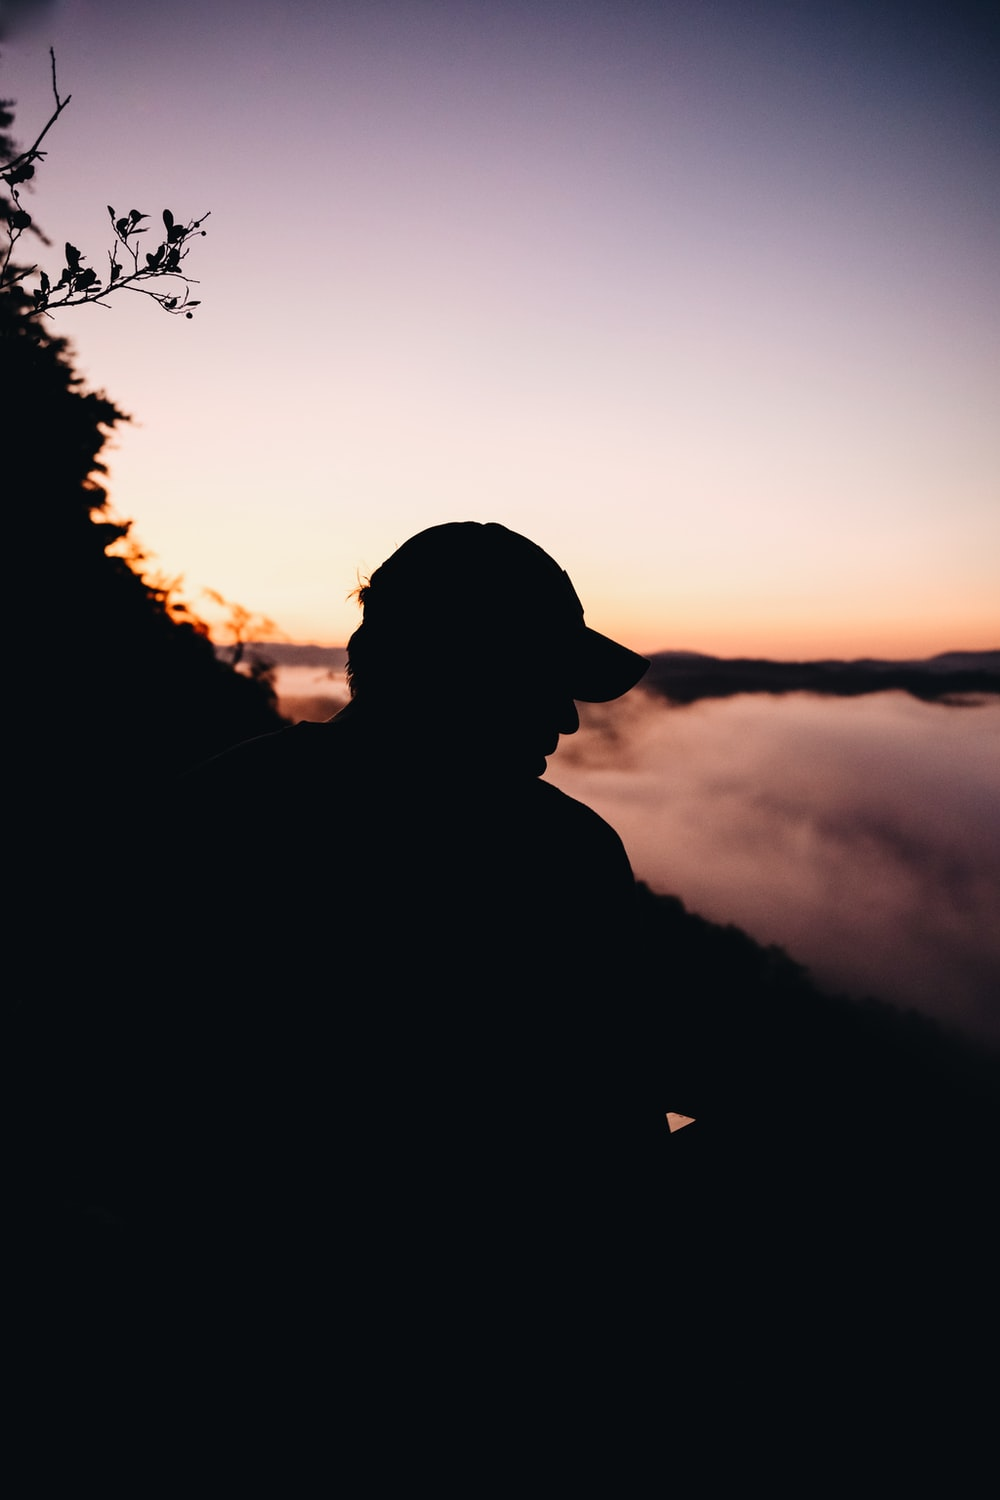 silhouette of man standing near tree during sunset